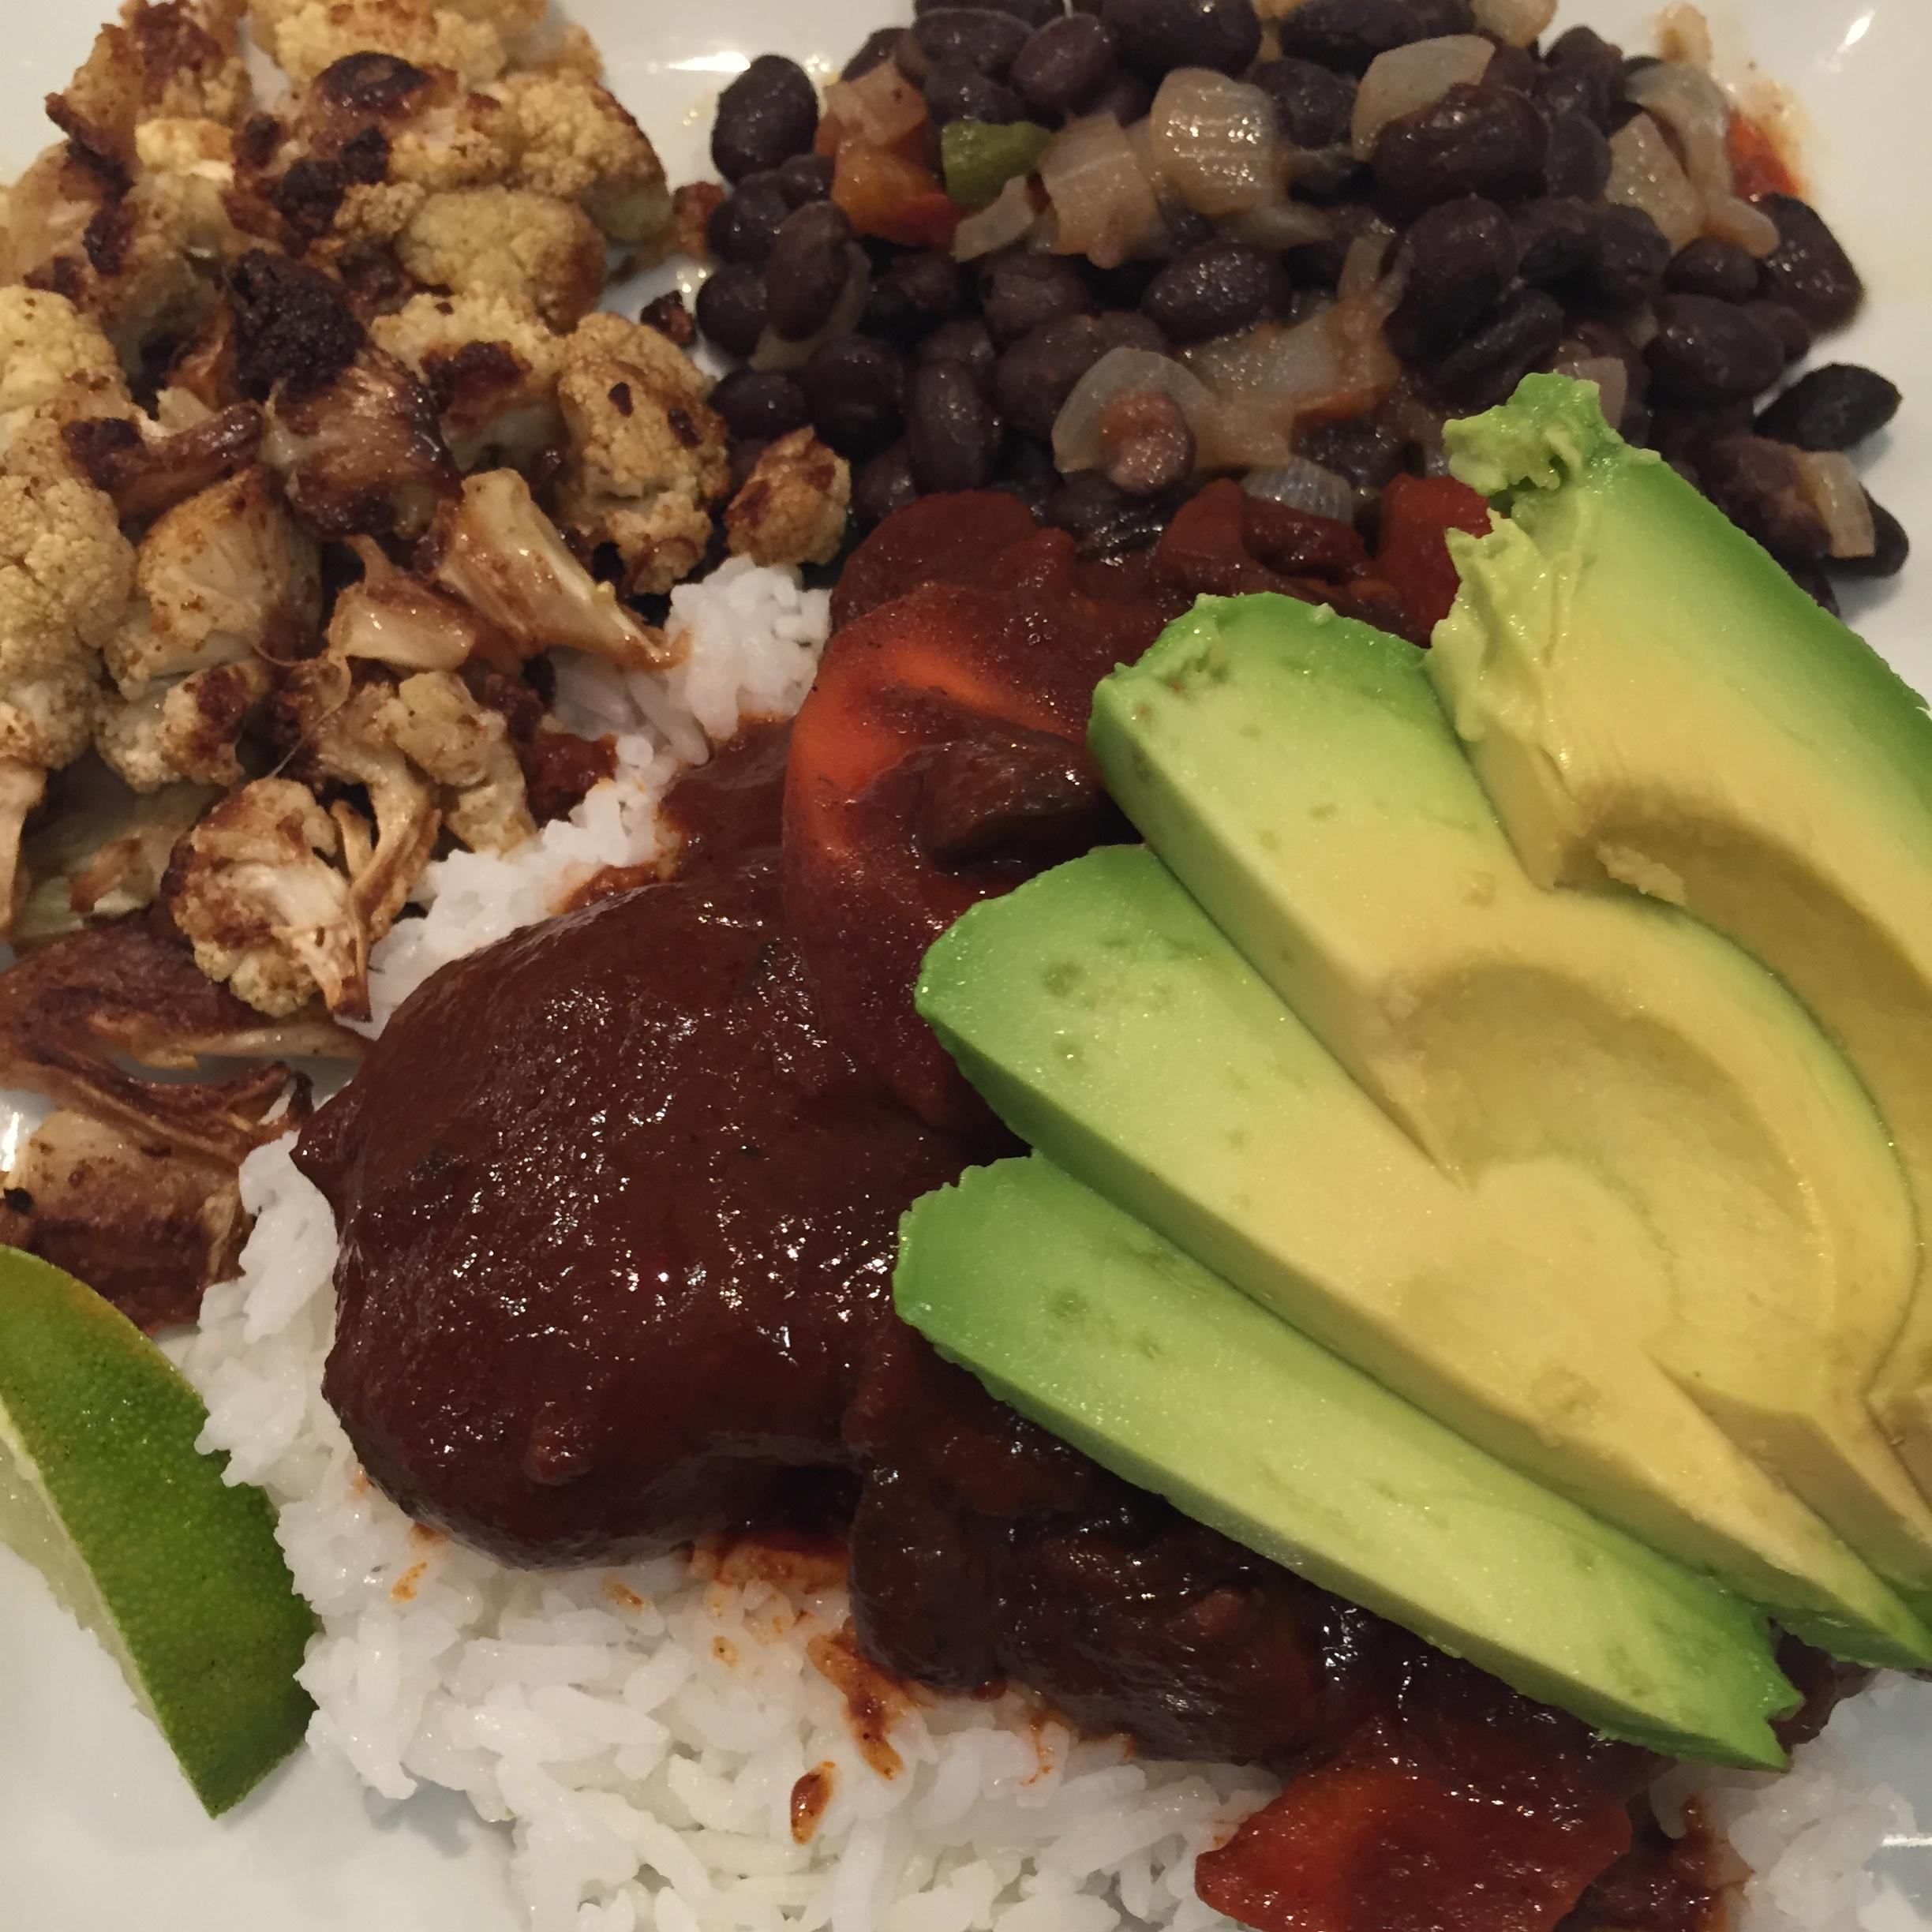 Chicken mole with sliced avocado. Sides of roasted cauliflower and black beans.